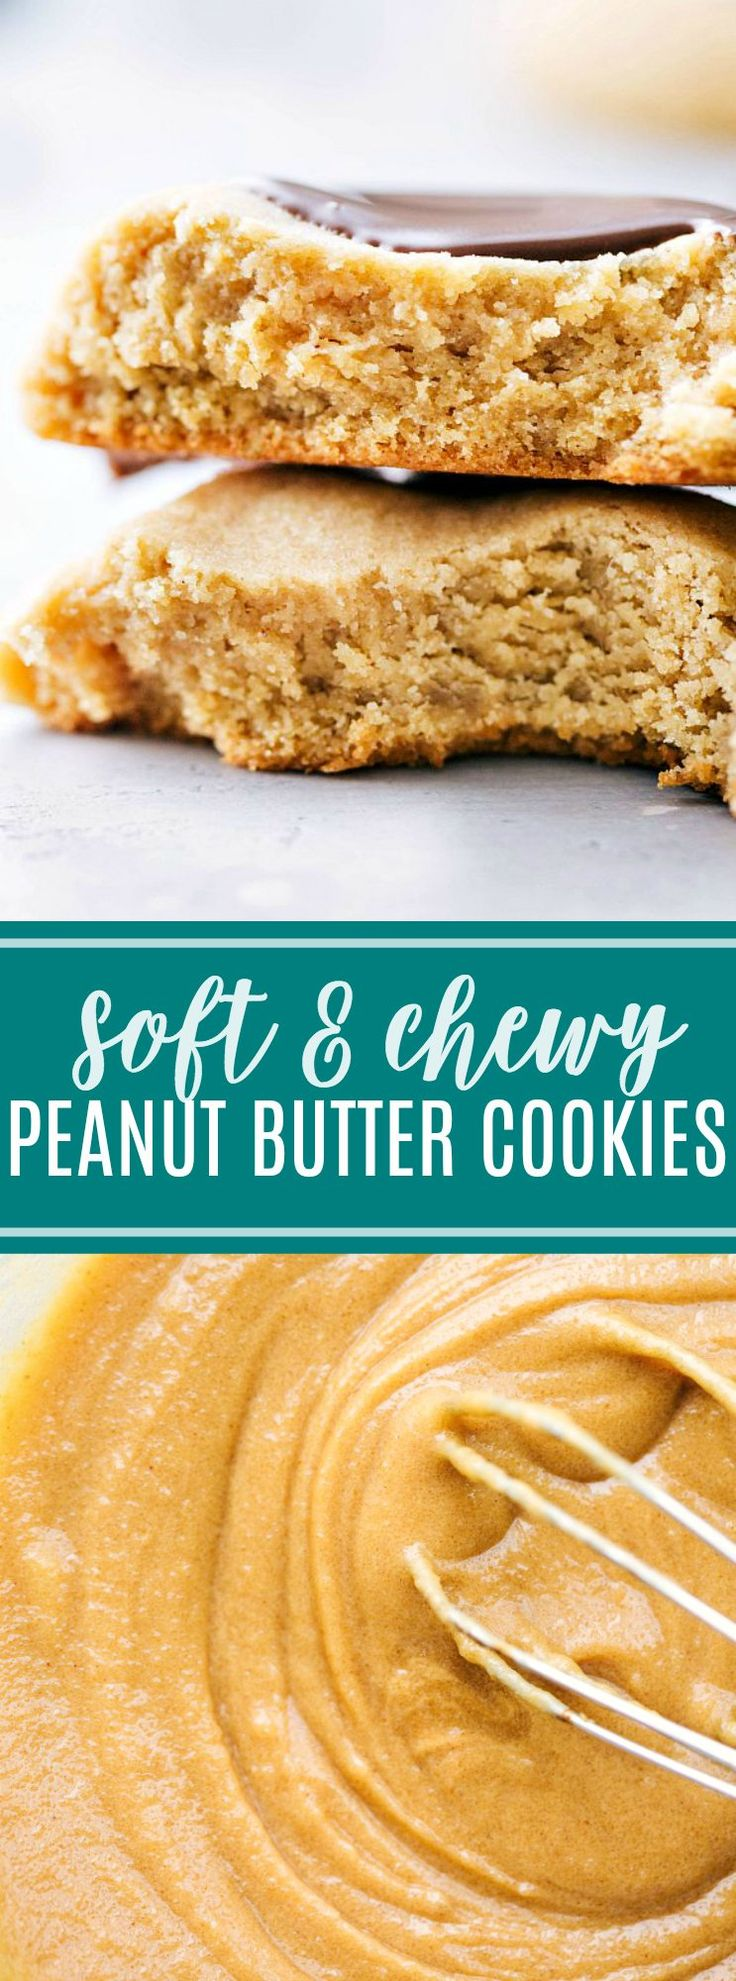 The ULTIMATE, tested-to-perfection, soft and chewy PEANUT BUTTER COOKIES dipped in chocolate. Everyone goes crazy for these cookies!